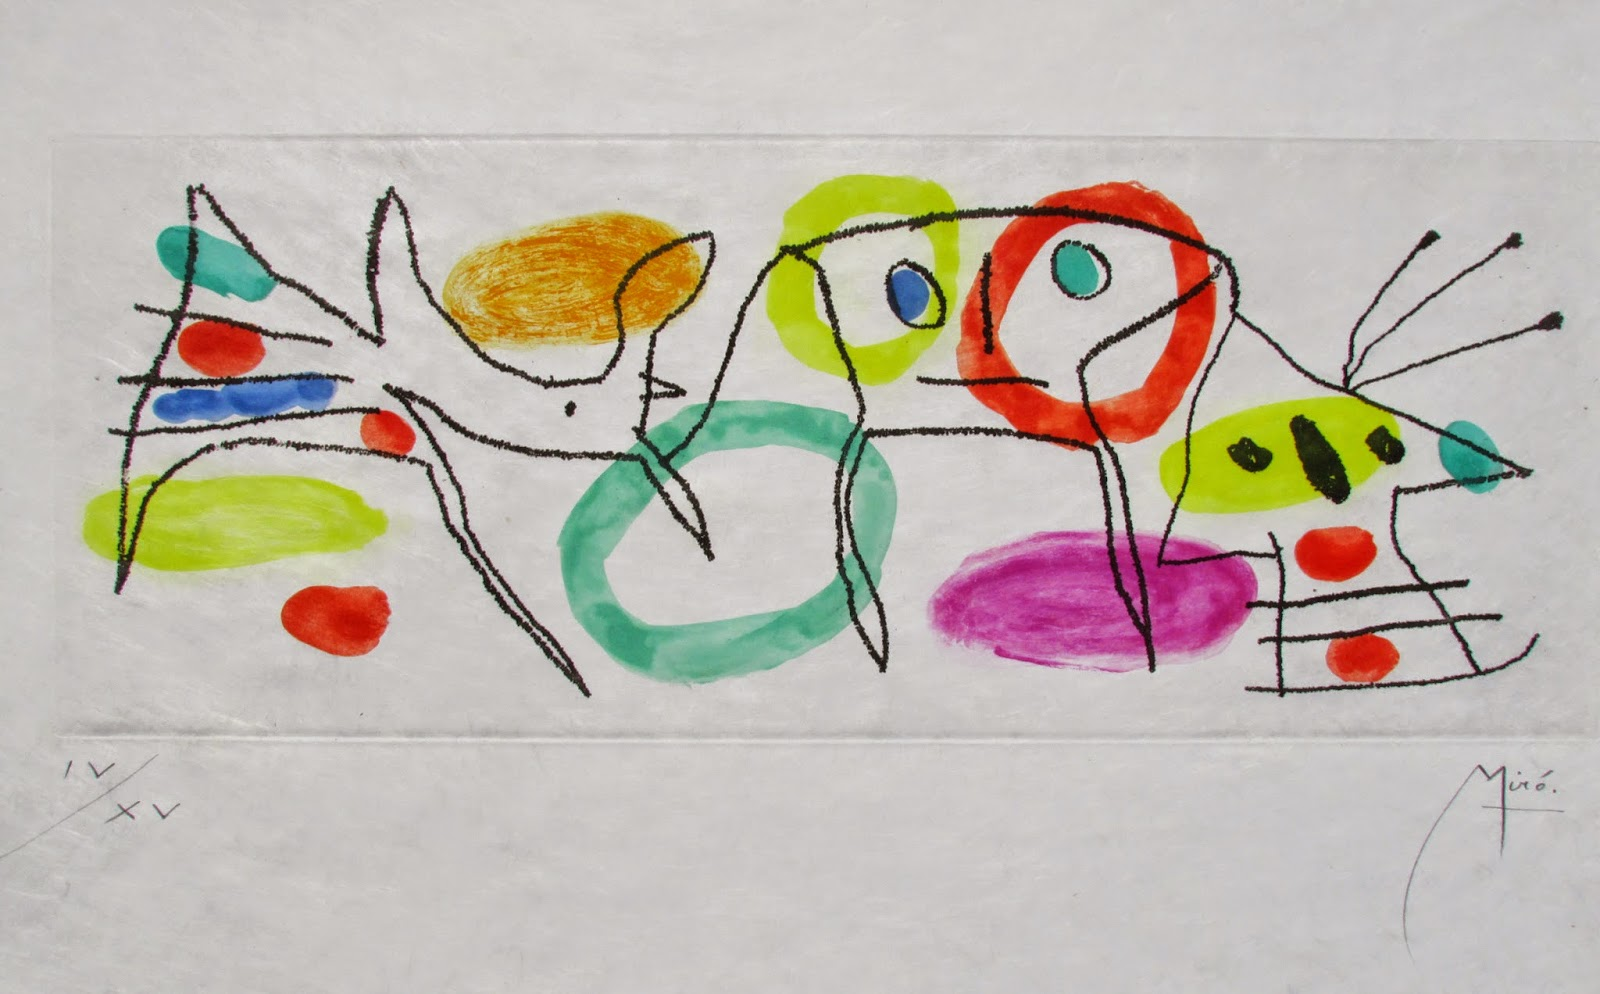 http://denisbloch.com/object.php/1104/joan-miro-la-magie-quotidienne-dupin-271-etchings-for-sale